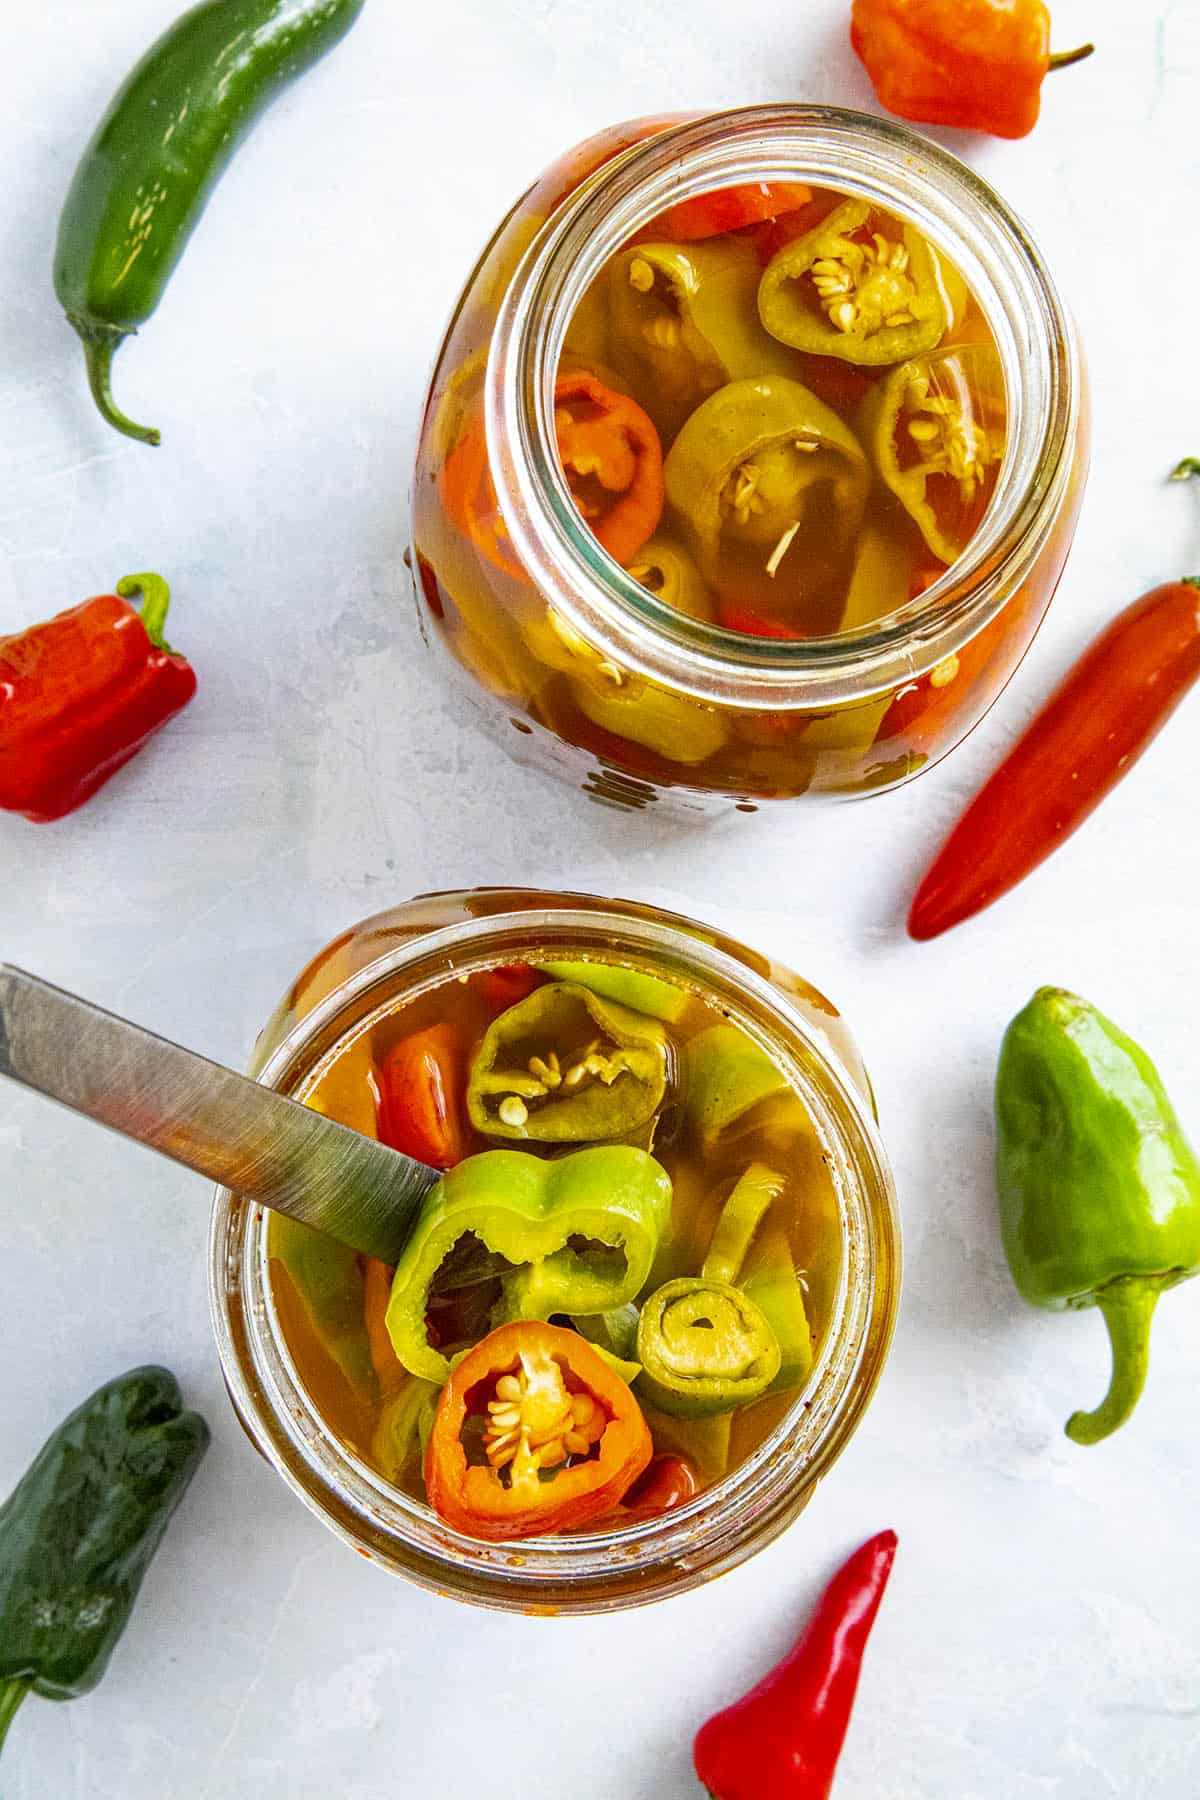 Pickled peppers in a jar, ready to serve